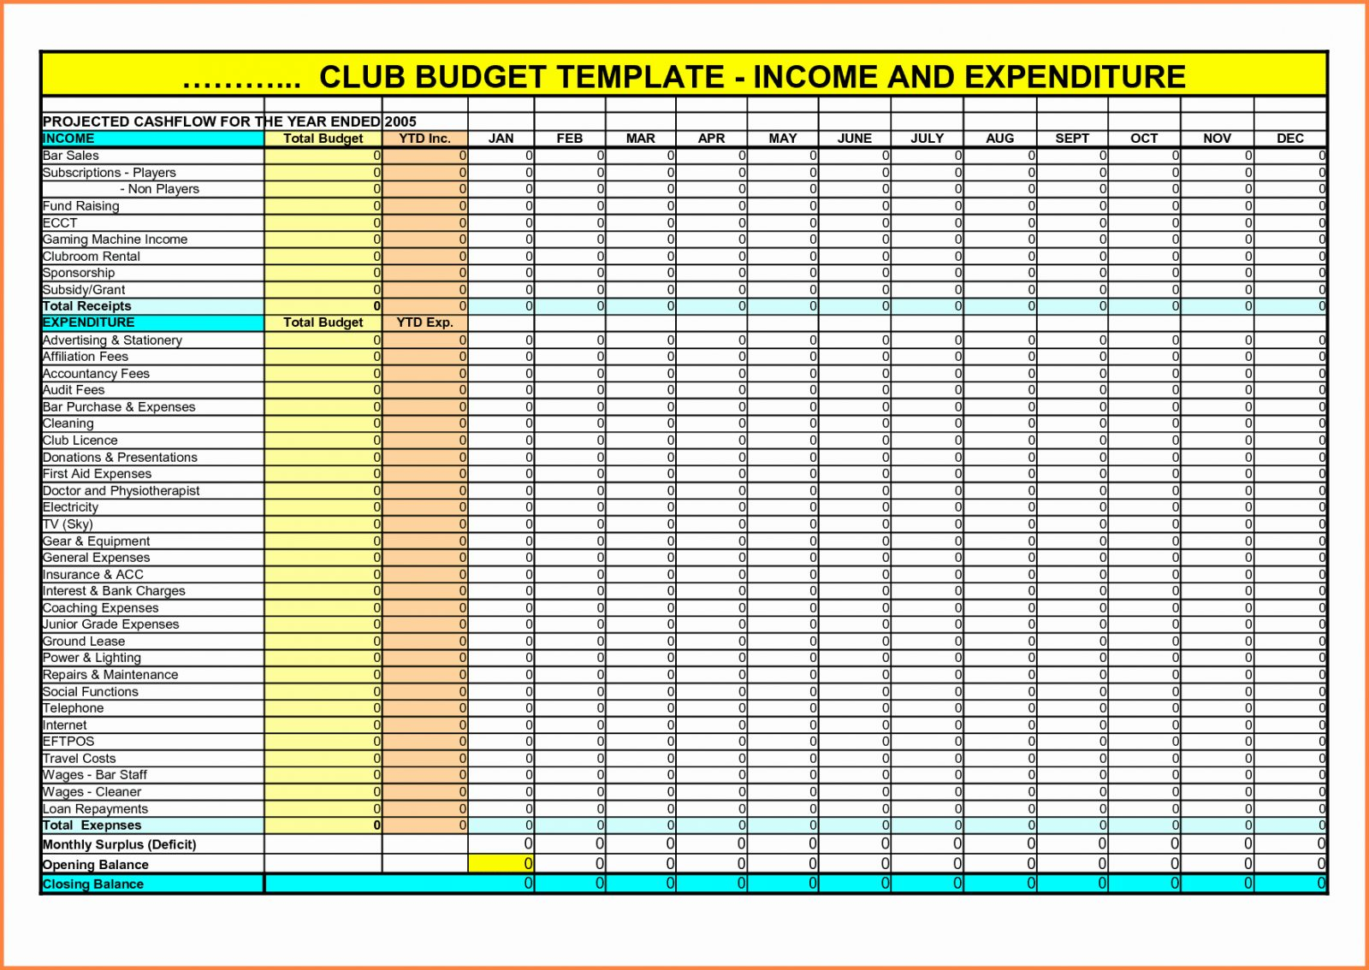 Rental Property Tracker Spreadsheet Within Rental Property Tracking Spreadsheet Template Income Tax And Expense